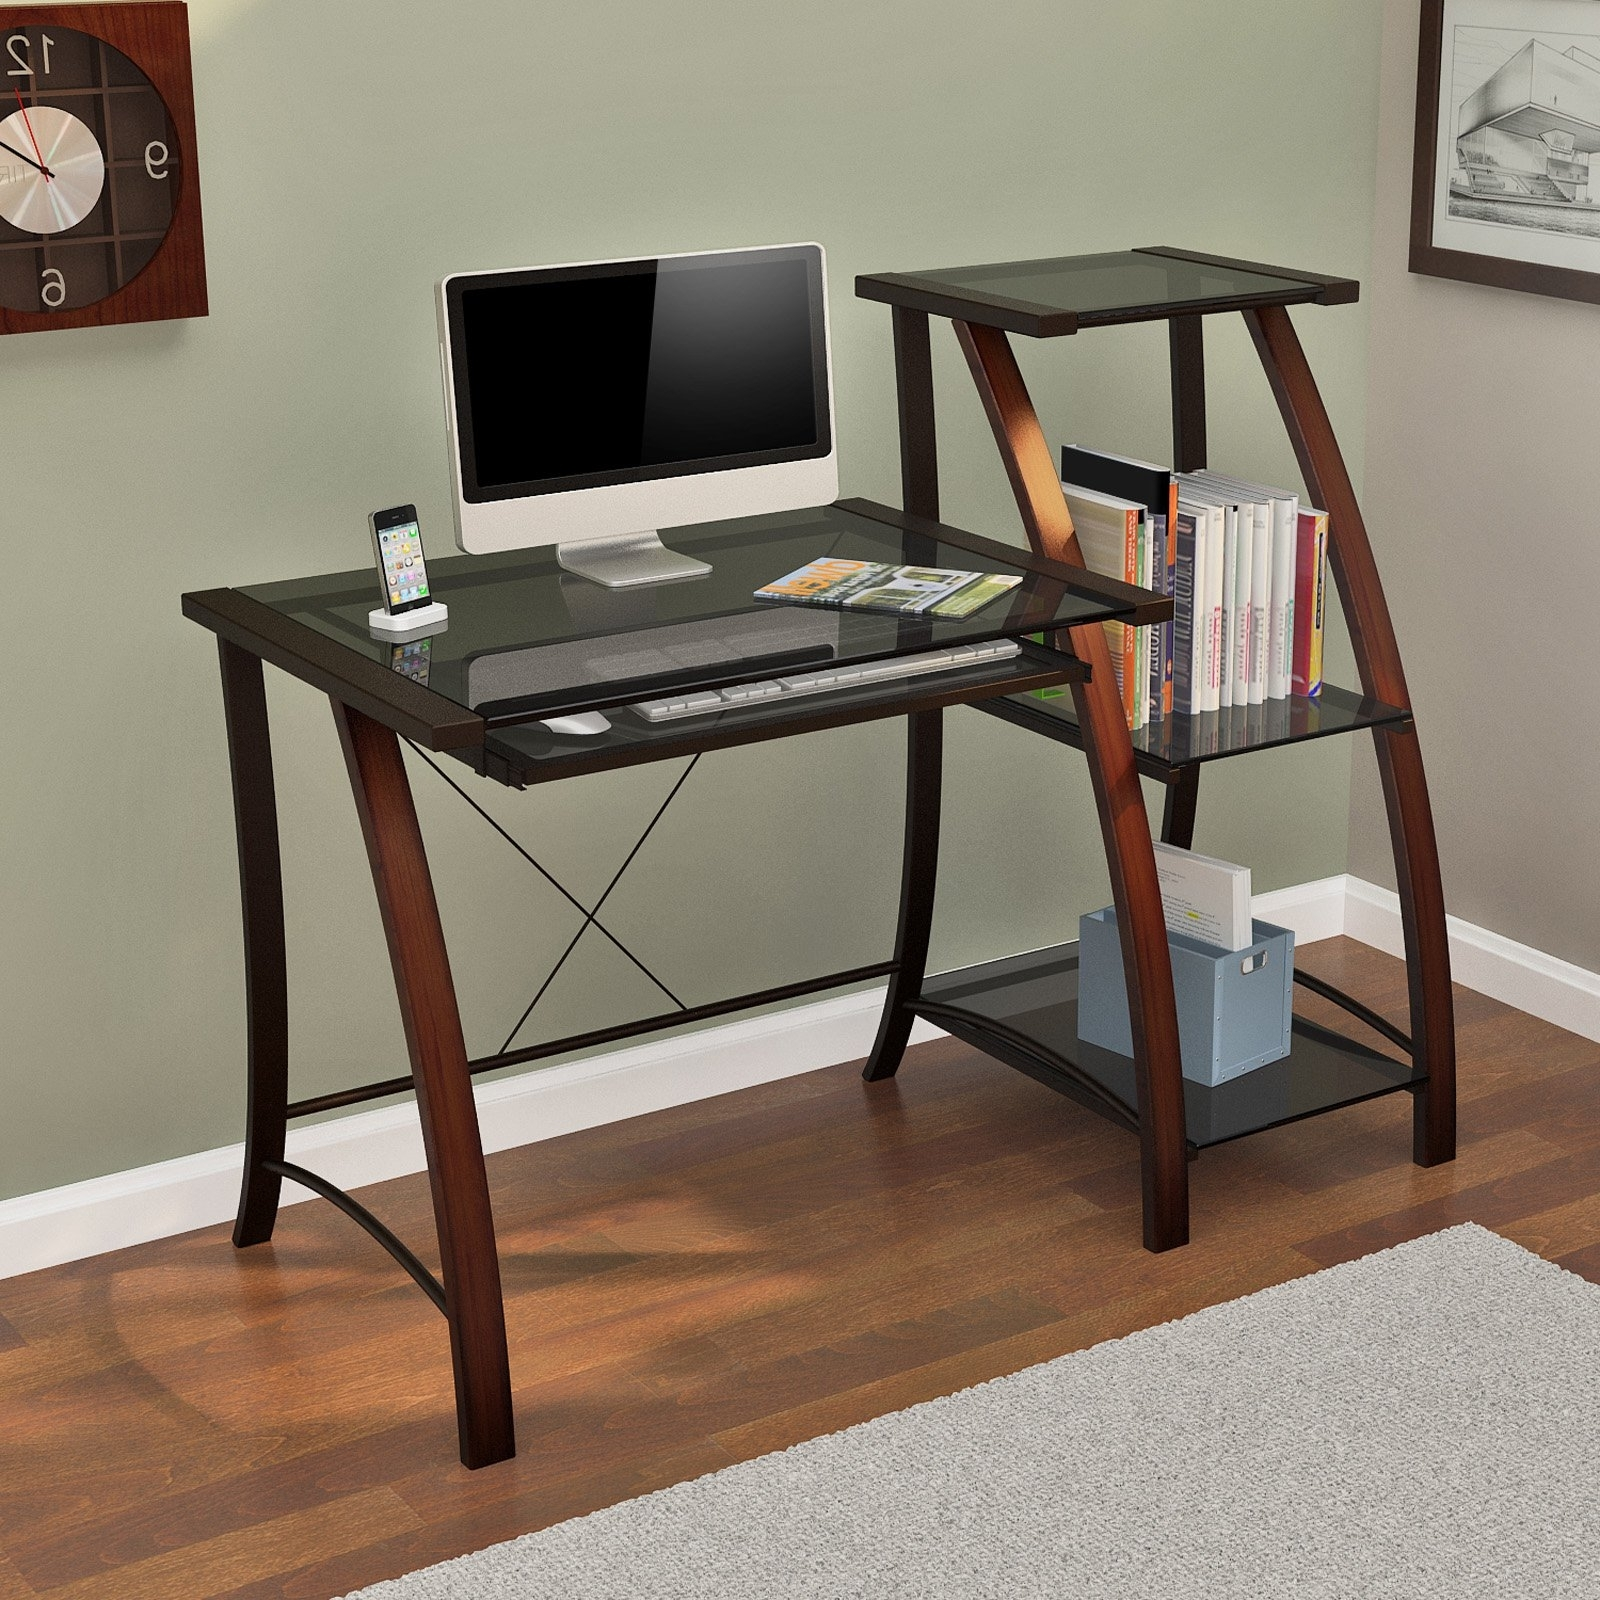 Z Line Triana Desk And Bookcase – Cherry – Walmart Throughout Most Recently Released Z Line Computer Desks (View 20 of 20)